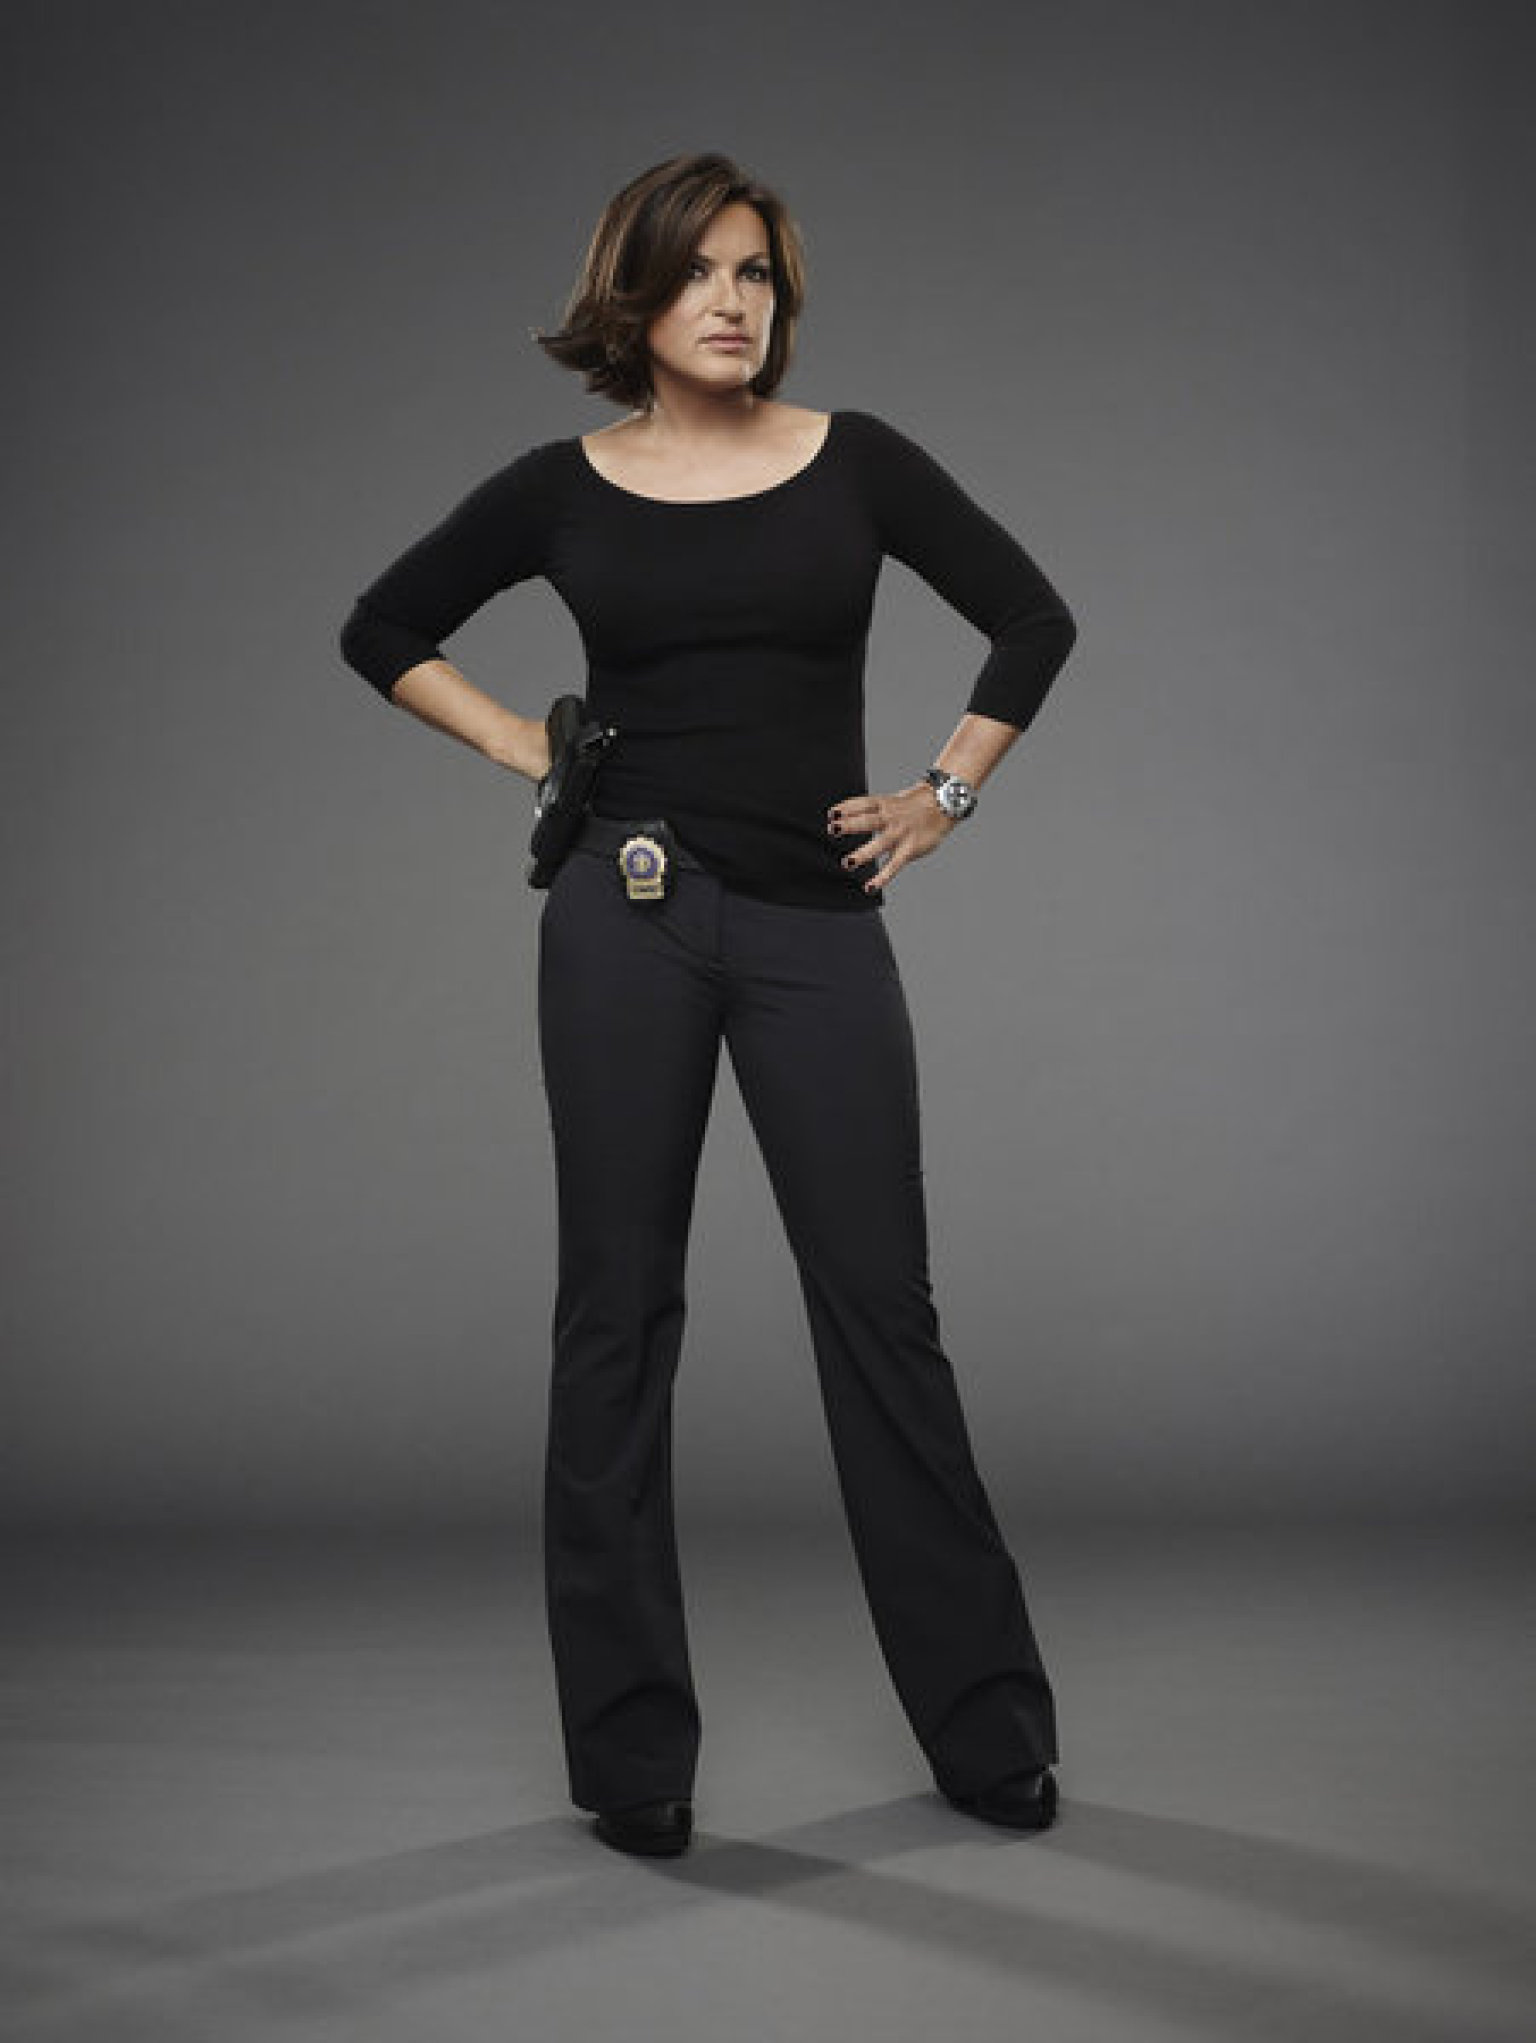 Benson S New Hair Debuts In Law Amp Order Svu Season 15